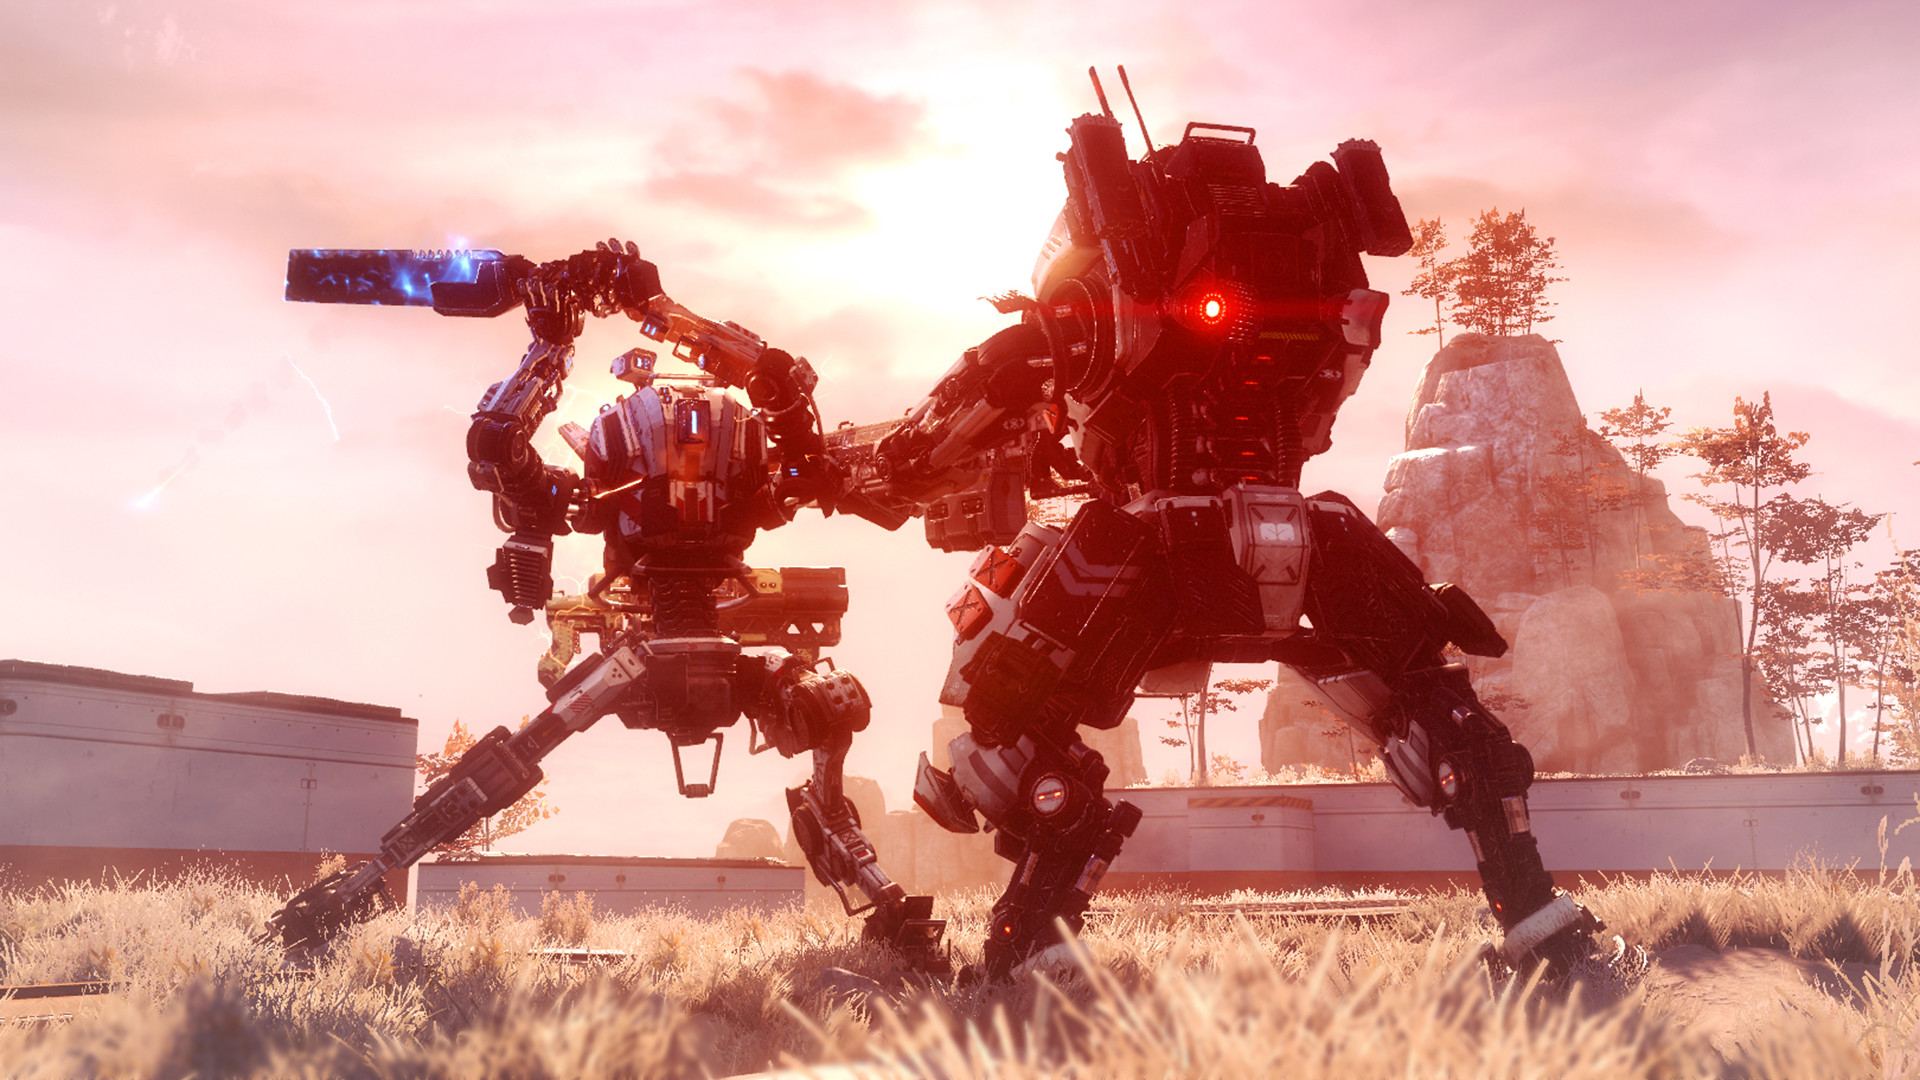 Titanfall 2 suddenly got massively popular on Steam, so now it's free for the weekend